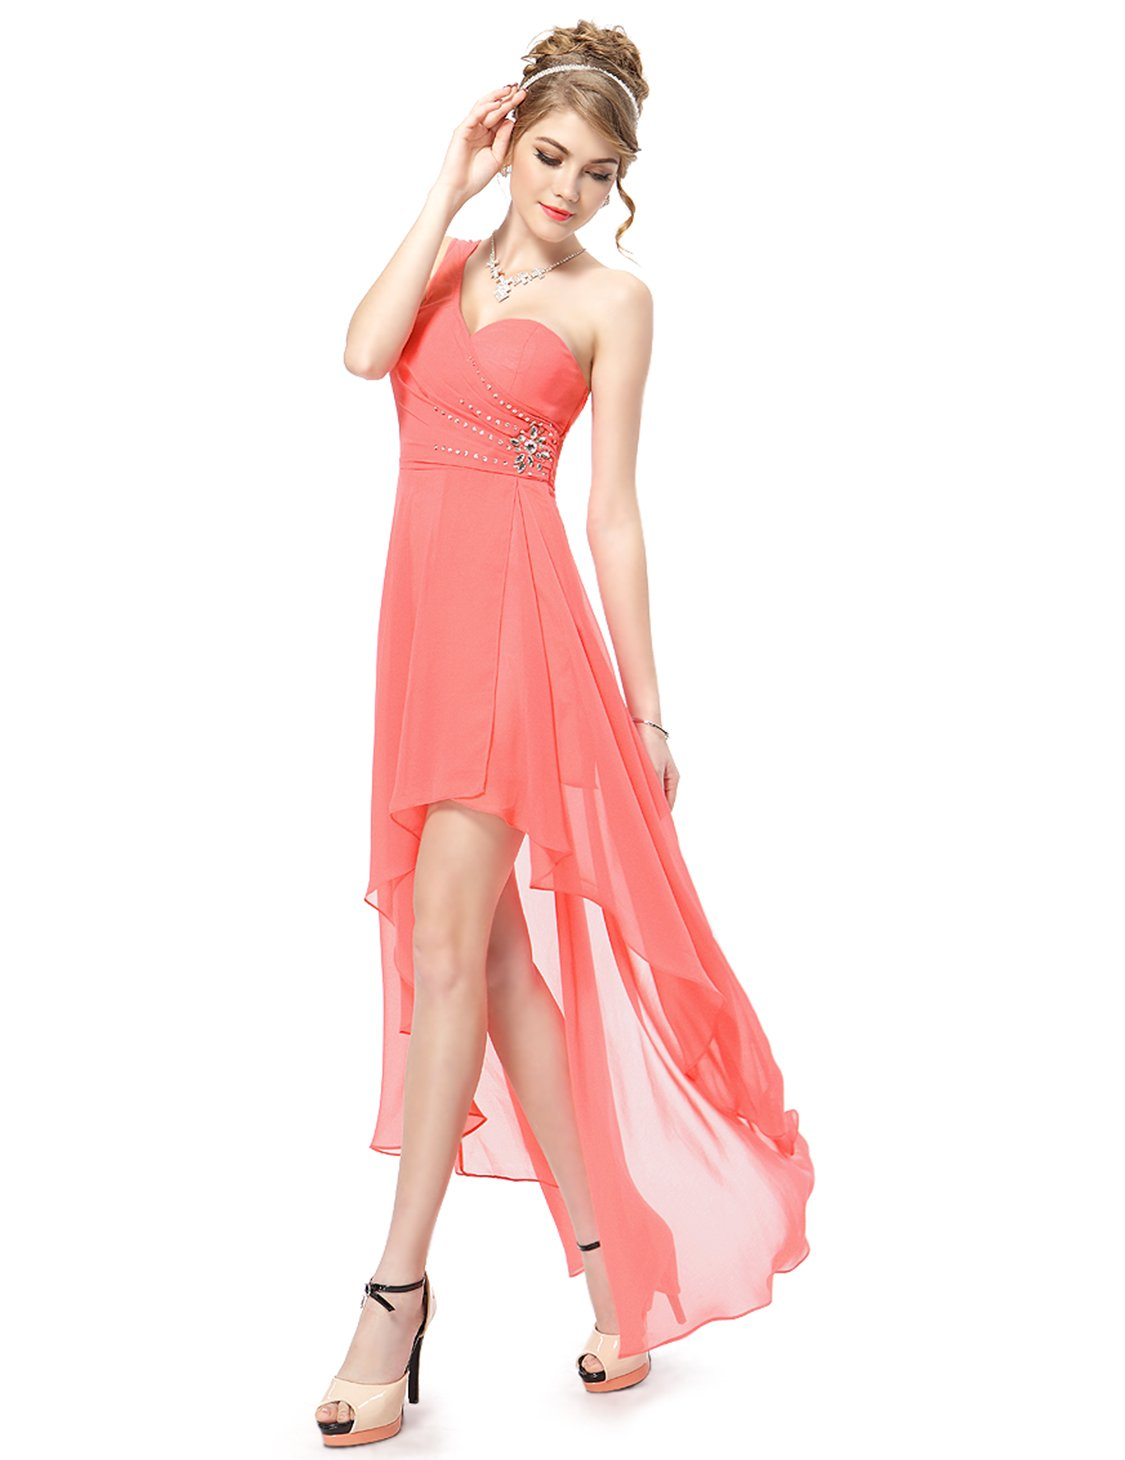 Coral, 16US, Ever Pretty Long Summer Dresses For Women 08100